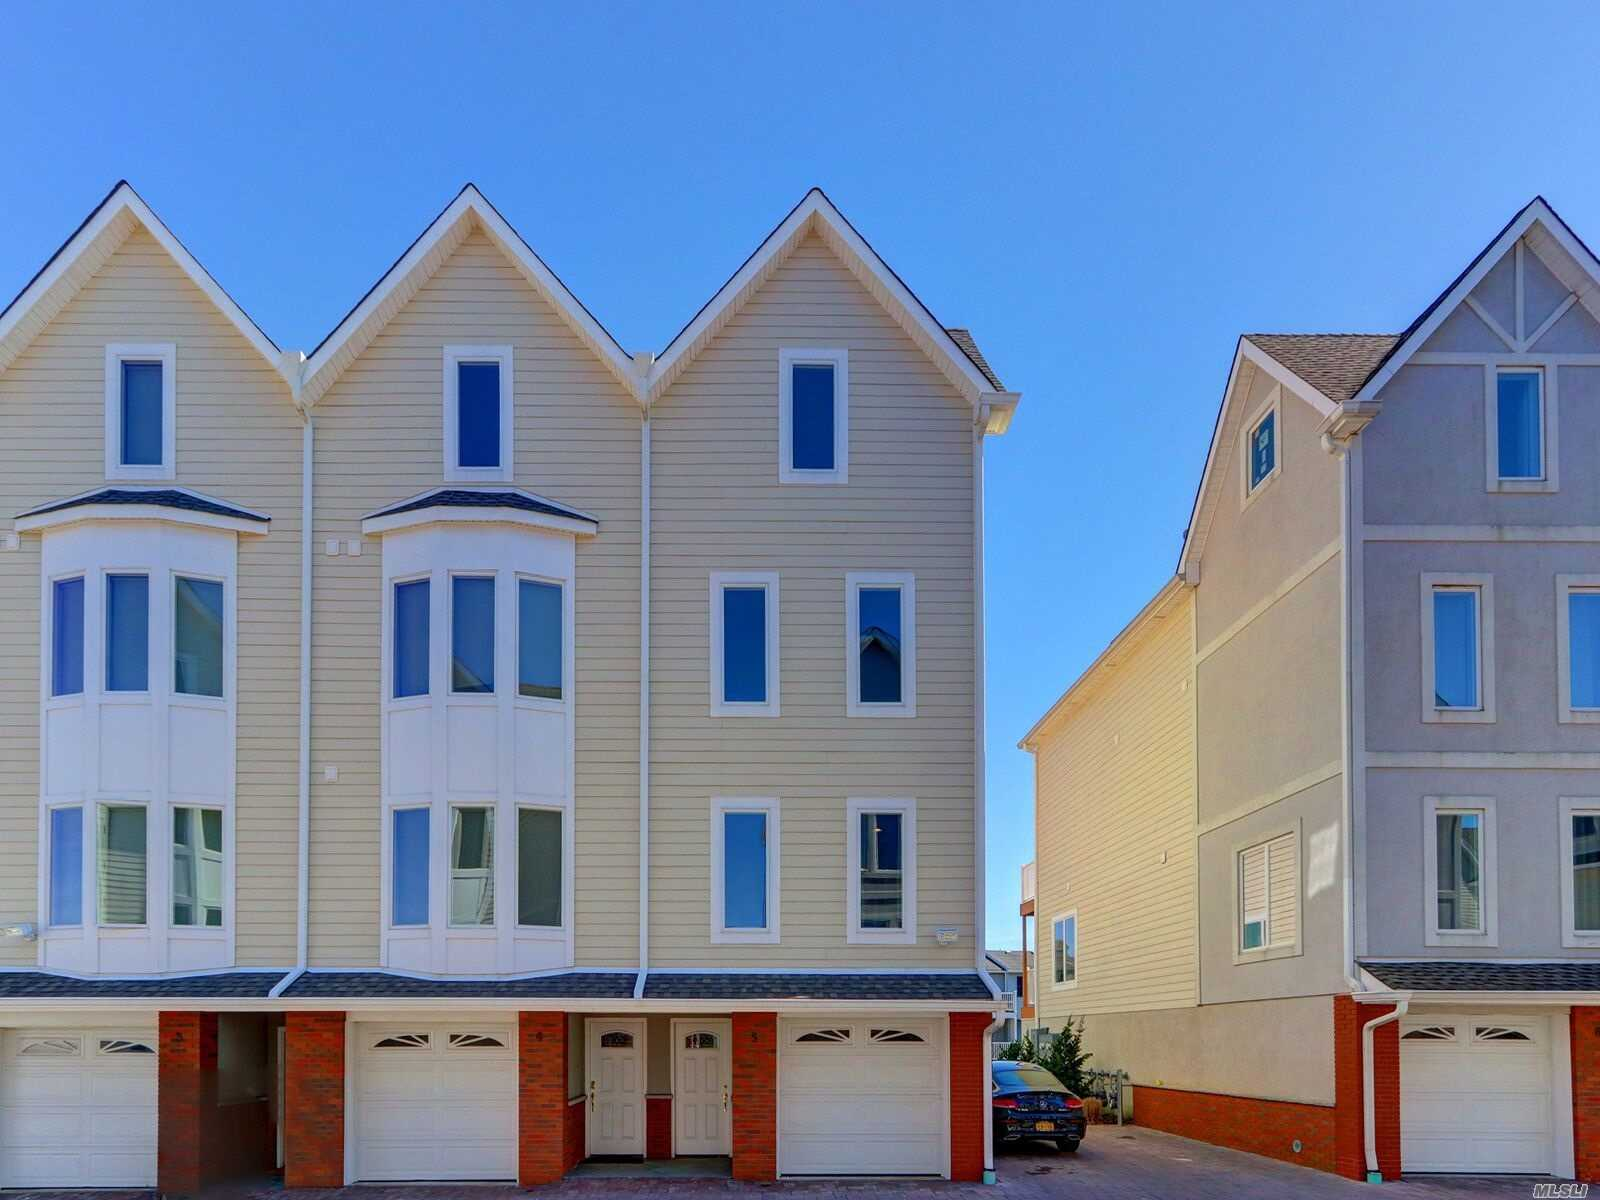 Yachtsman's Cove, Beautiful New Construction Waterfront Condo Development, 3 Levels of Living Space, Open Floor Plan, Featuring Hardwood Floors, CAC, Gas Heat & Cooking, 2 Car Garage, Private Deeded Boat Slip, Outdoor Area w/Boardwalk, Green Space & Gazebo